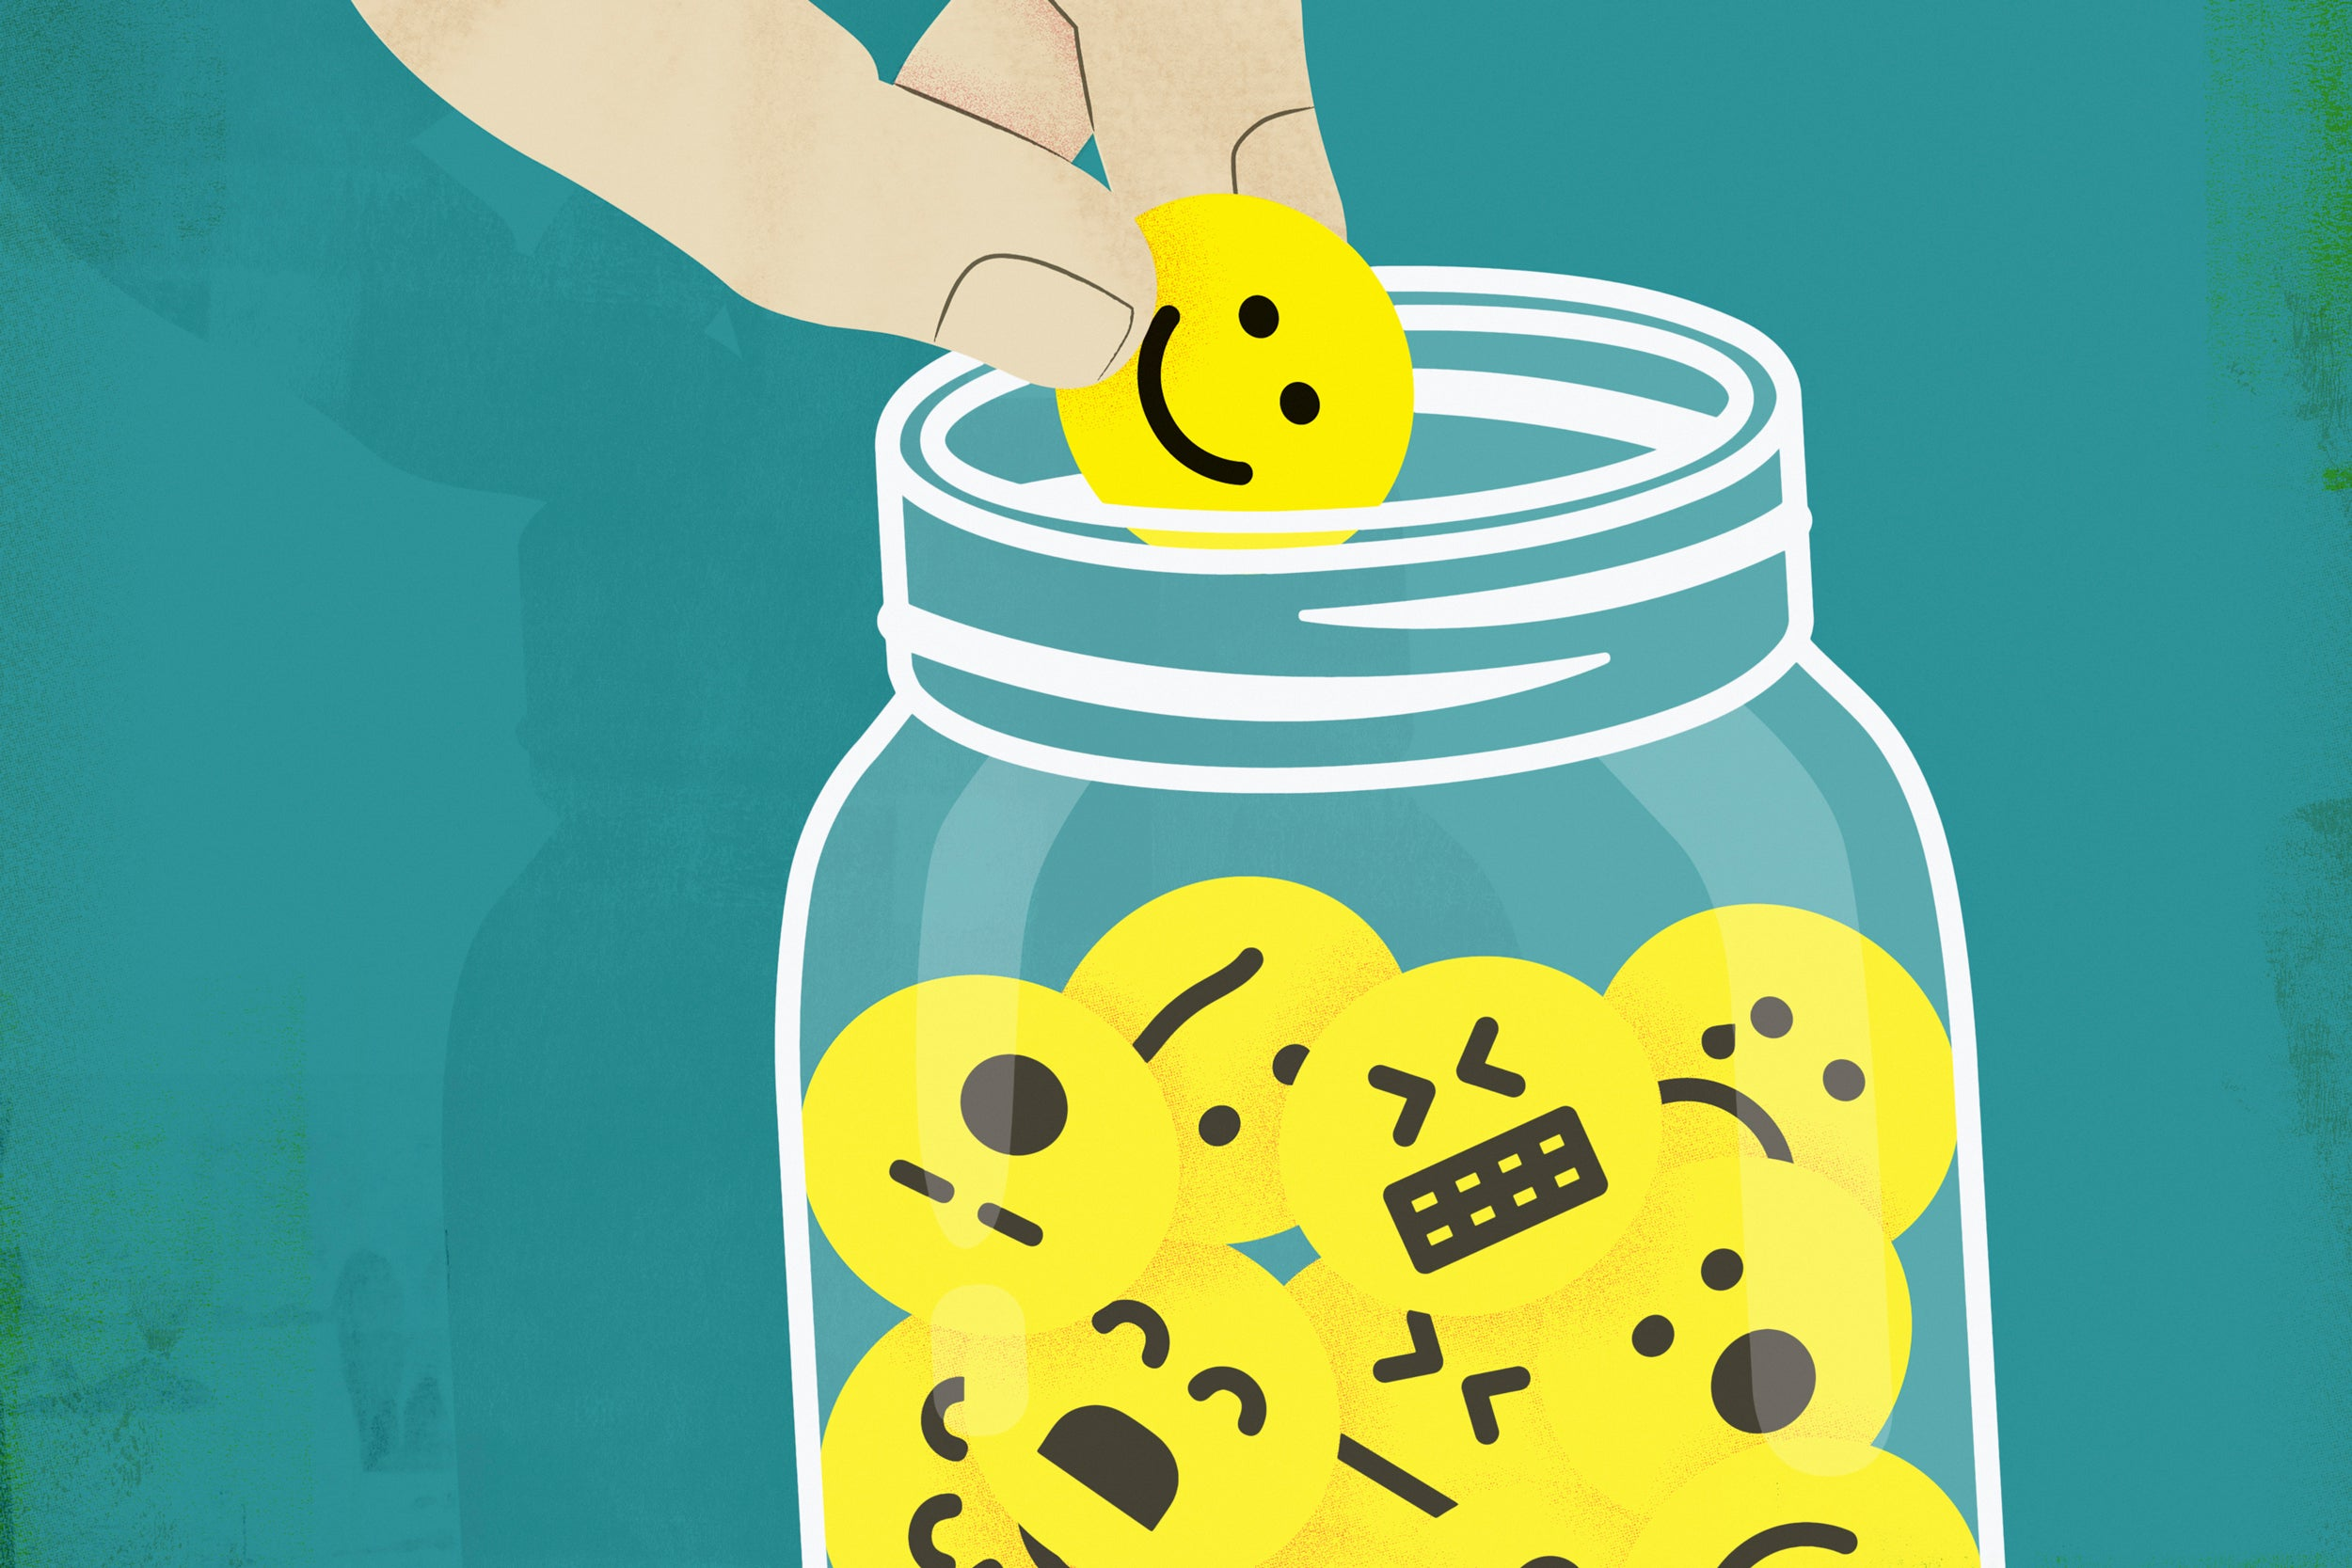 Hand choosing smiley face from jar of emoticons.